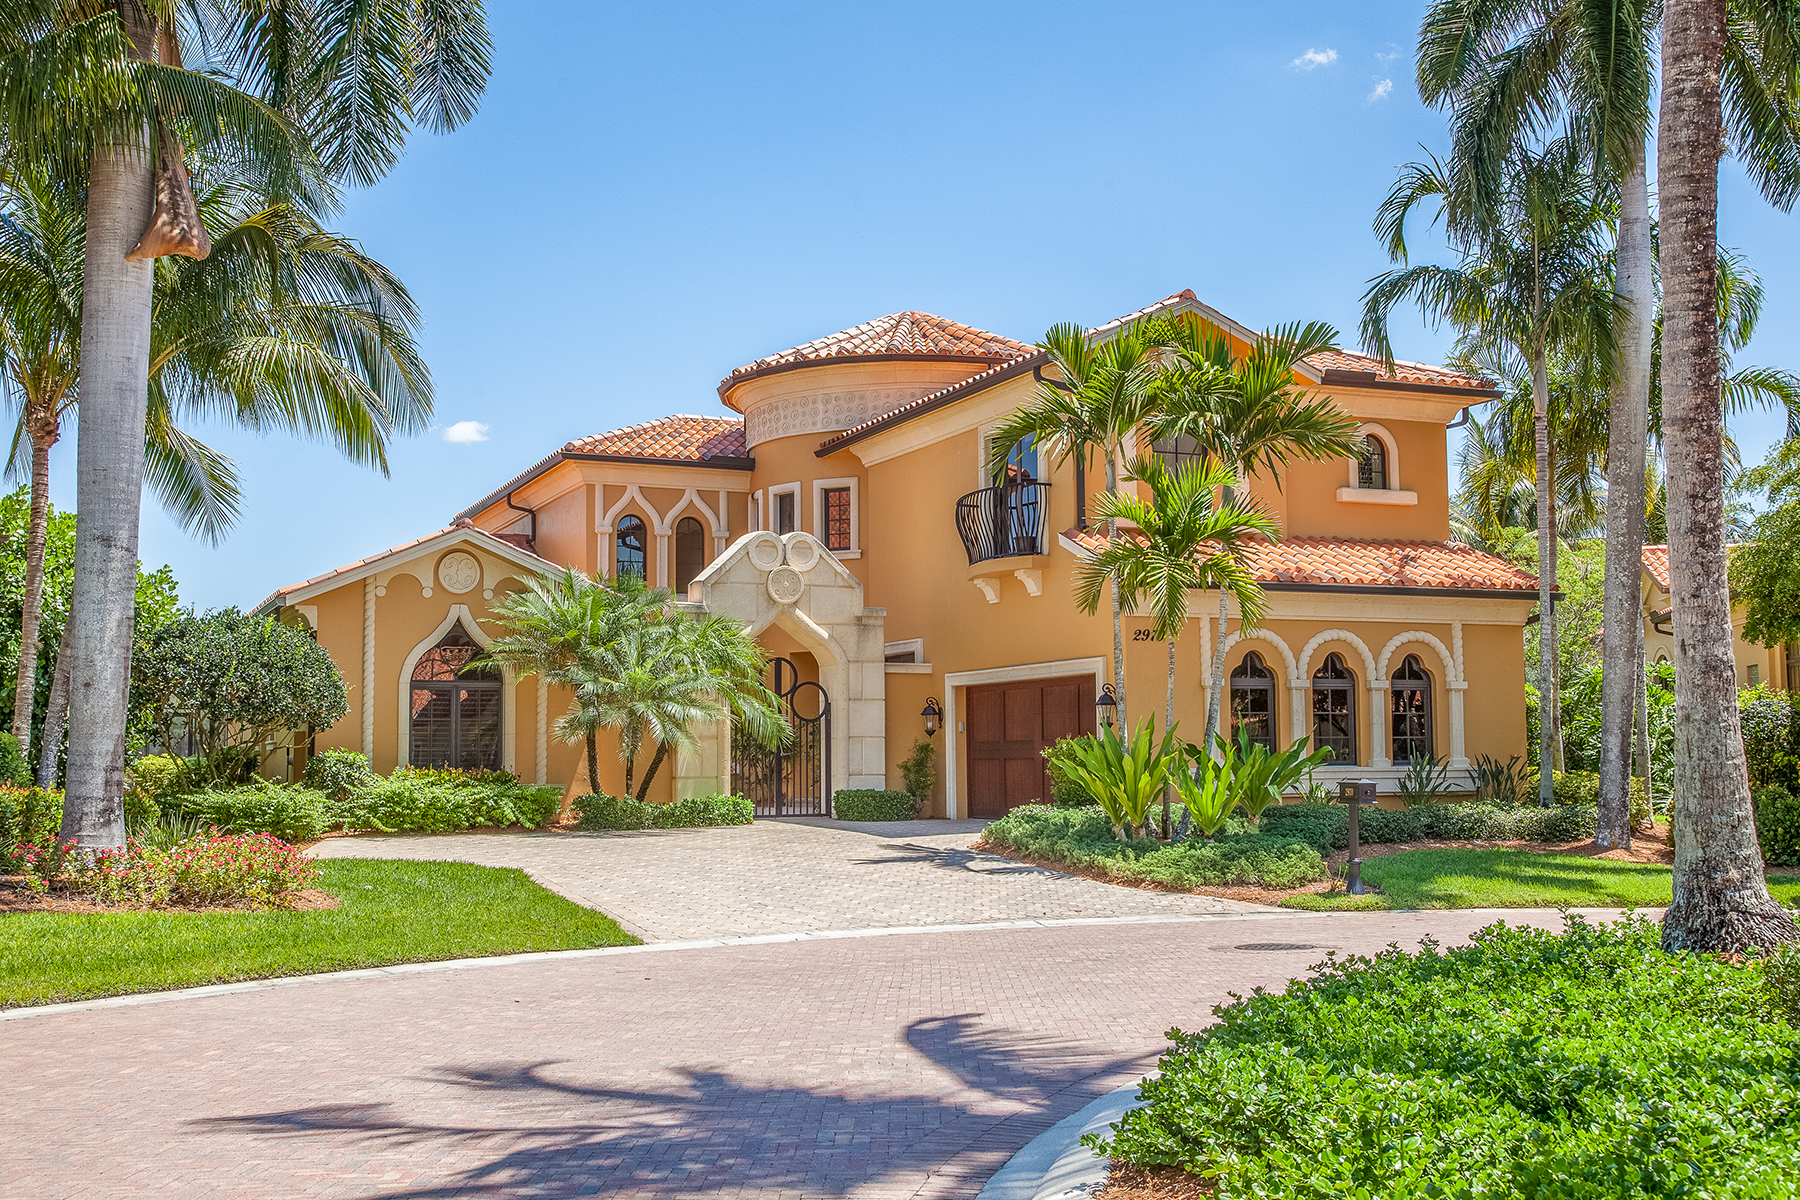 Single Family Home for Sale at SERAFINA AT TIBURON 2970 Tiburon Blvd E, Naples, Florida 34109 United States